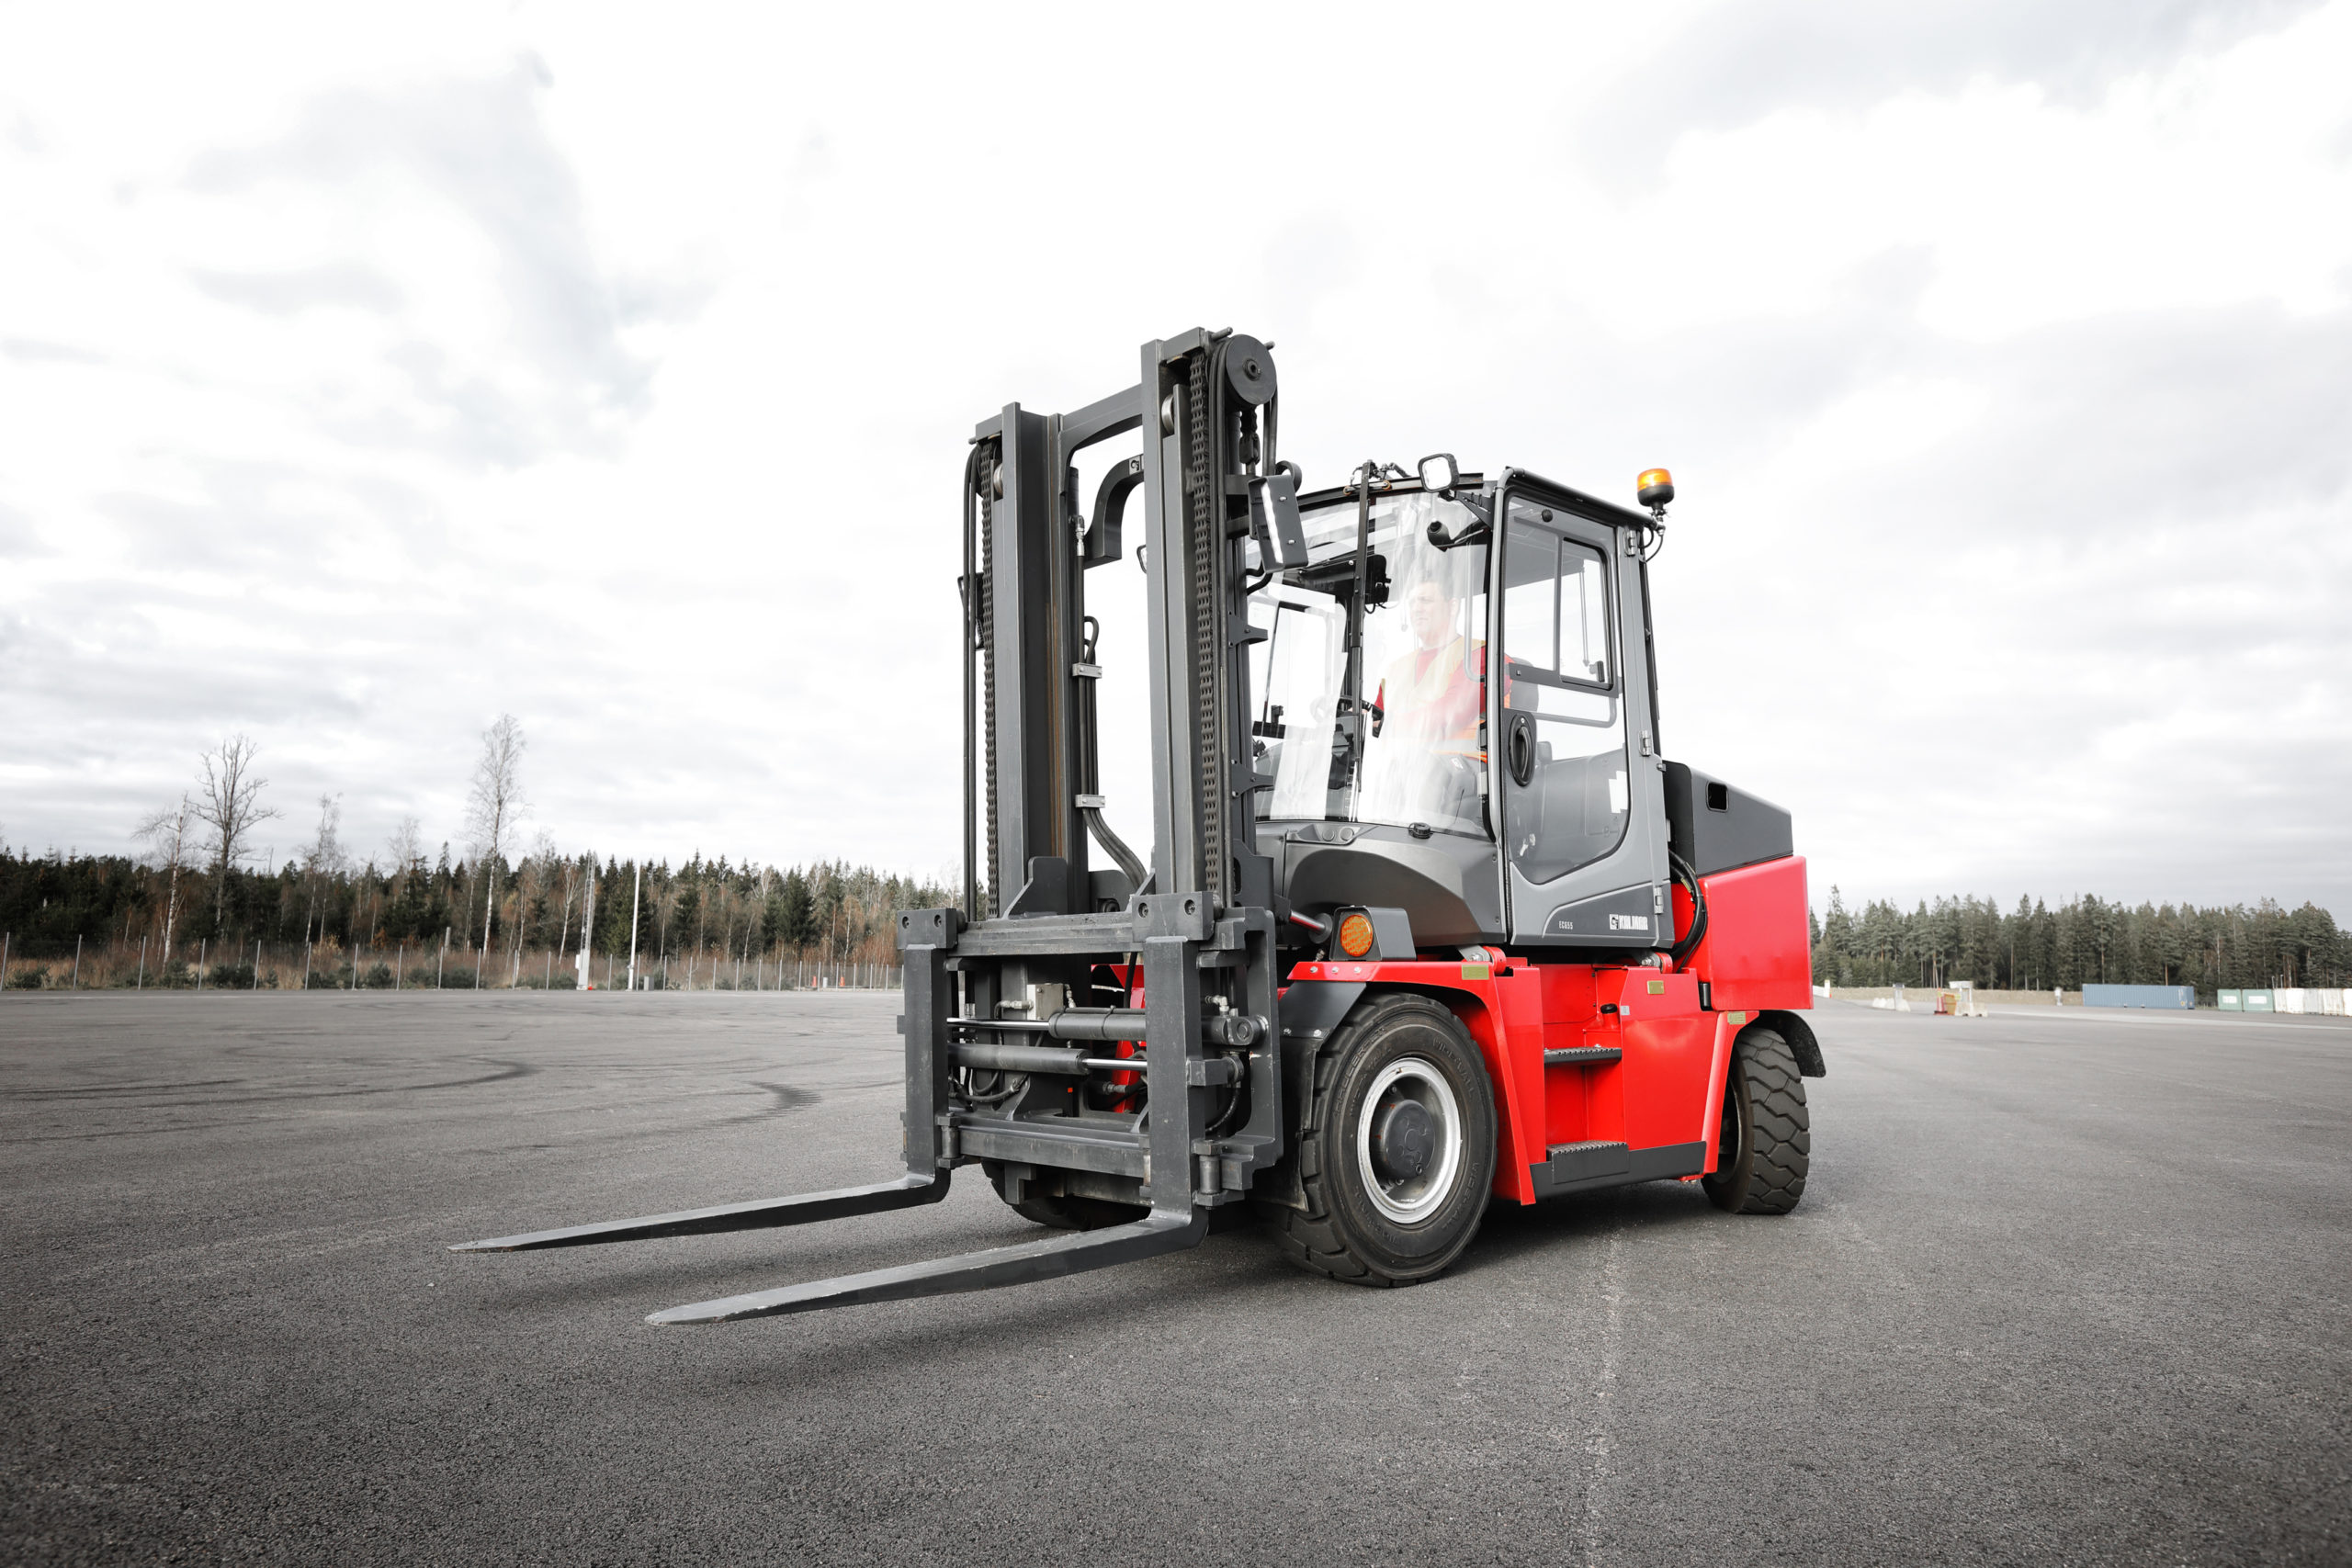 Kalmar to supply electric forklift trucks to Sagres